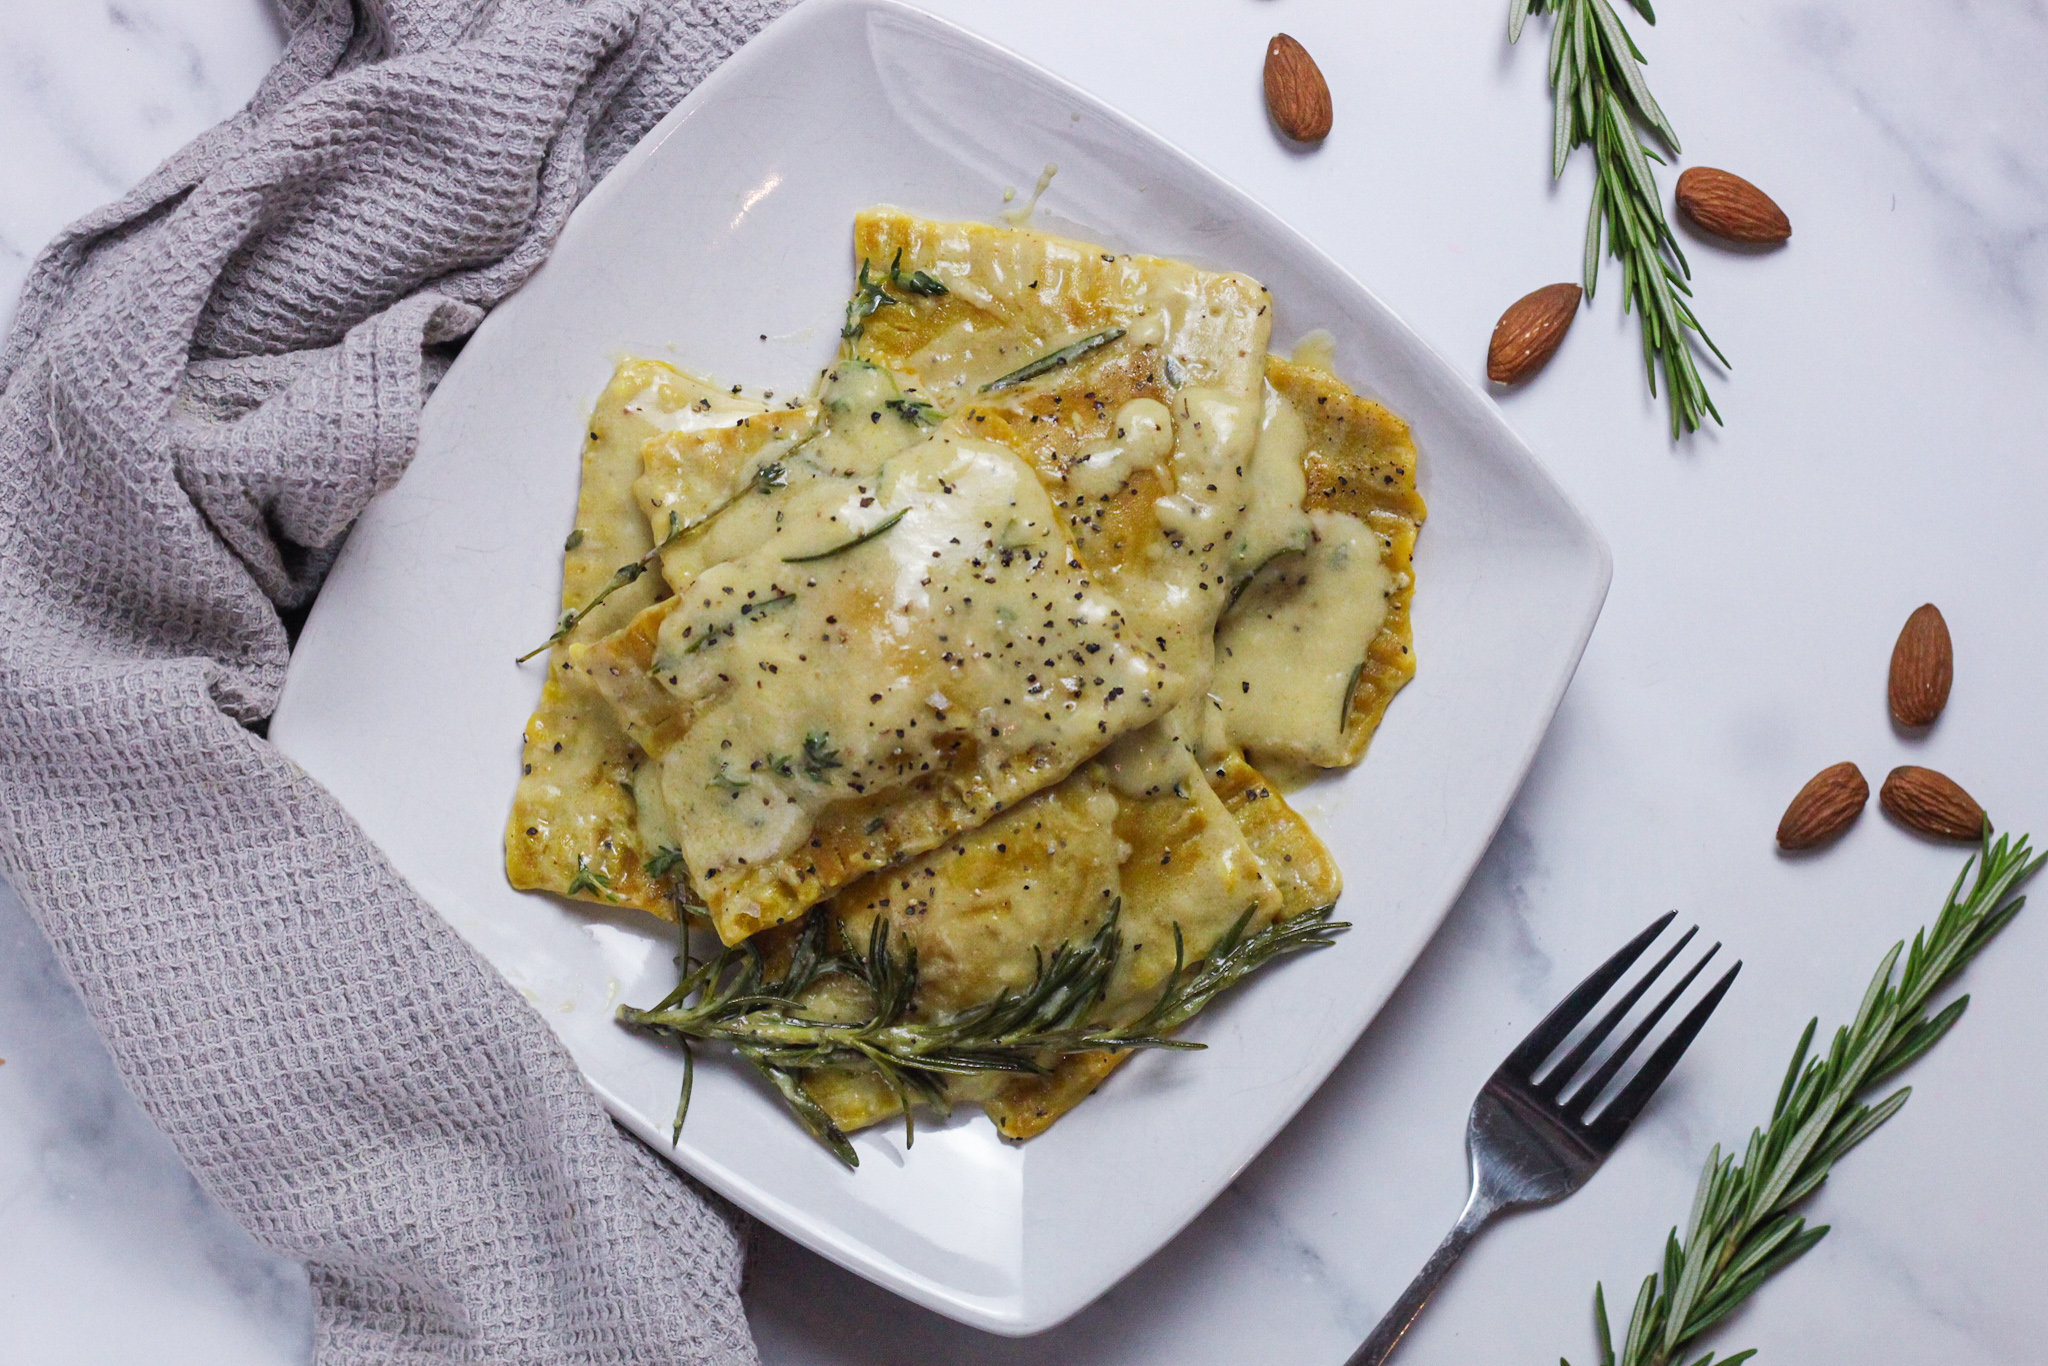 Vegan Ravioli with Spinach Almond Ricotta